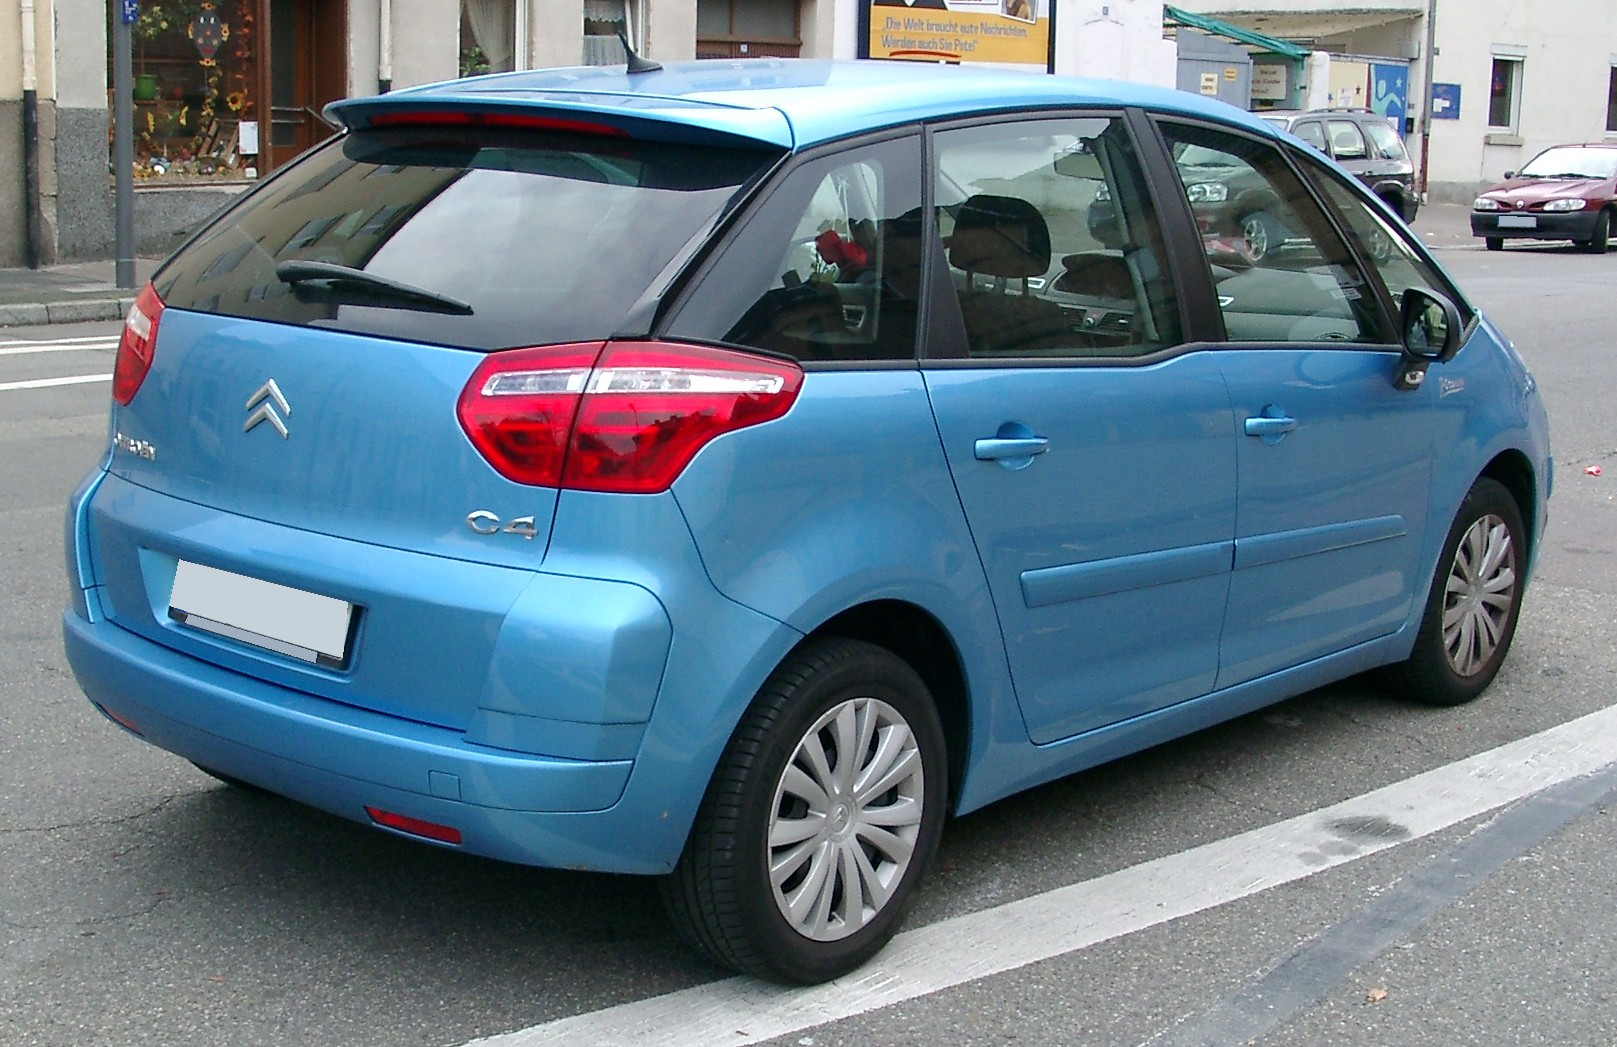 file citroen c4 picasso rear wikimedia commons. Black Bedroom Furniture Sets. Home Design Ideas